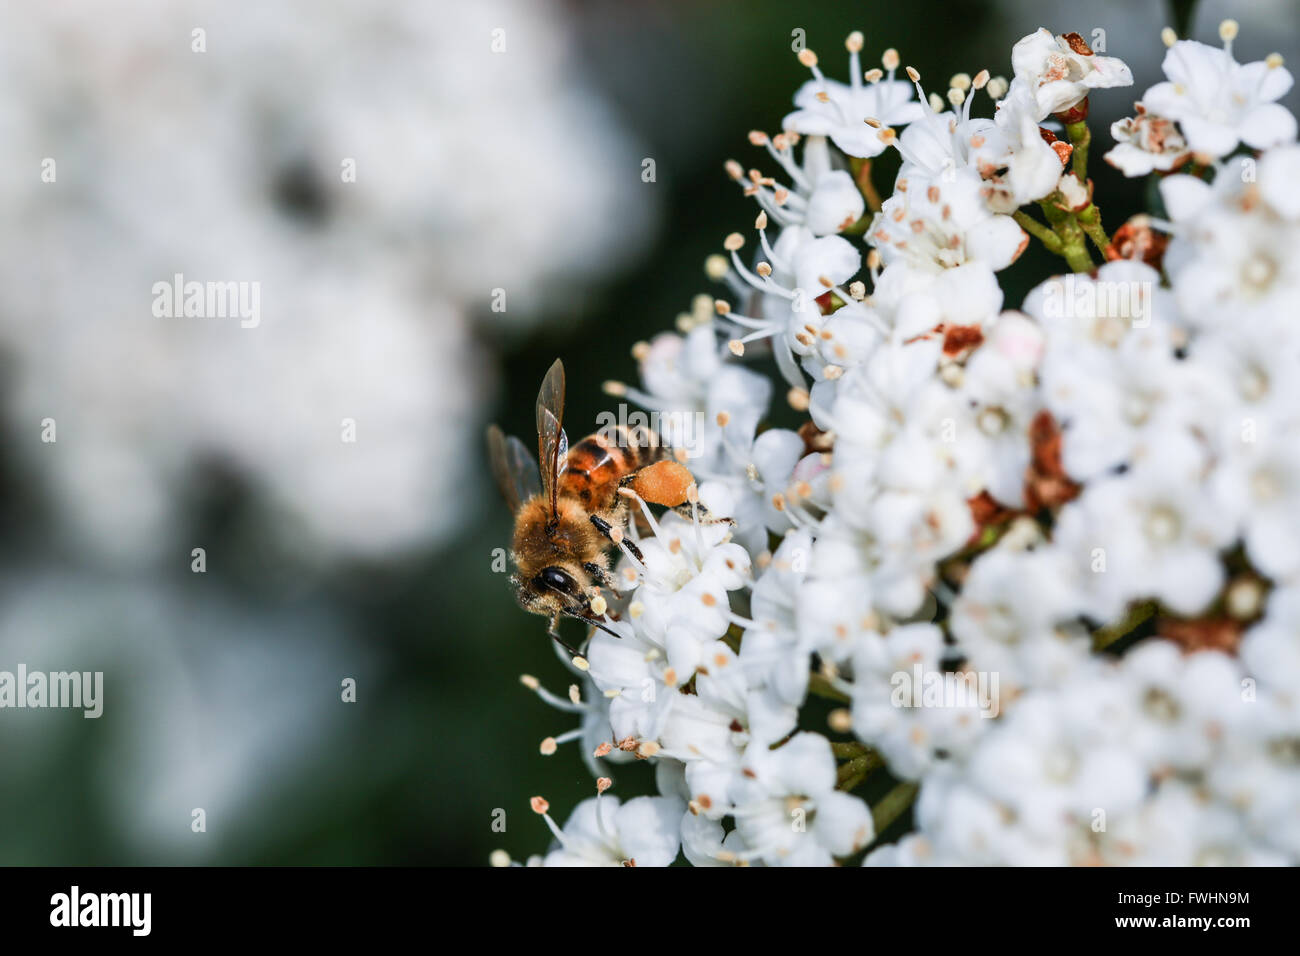 Bee on a viburnum flower - Stock Image